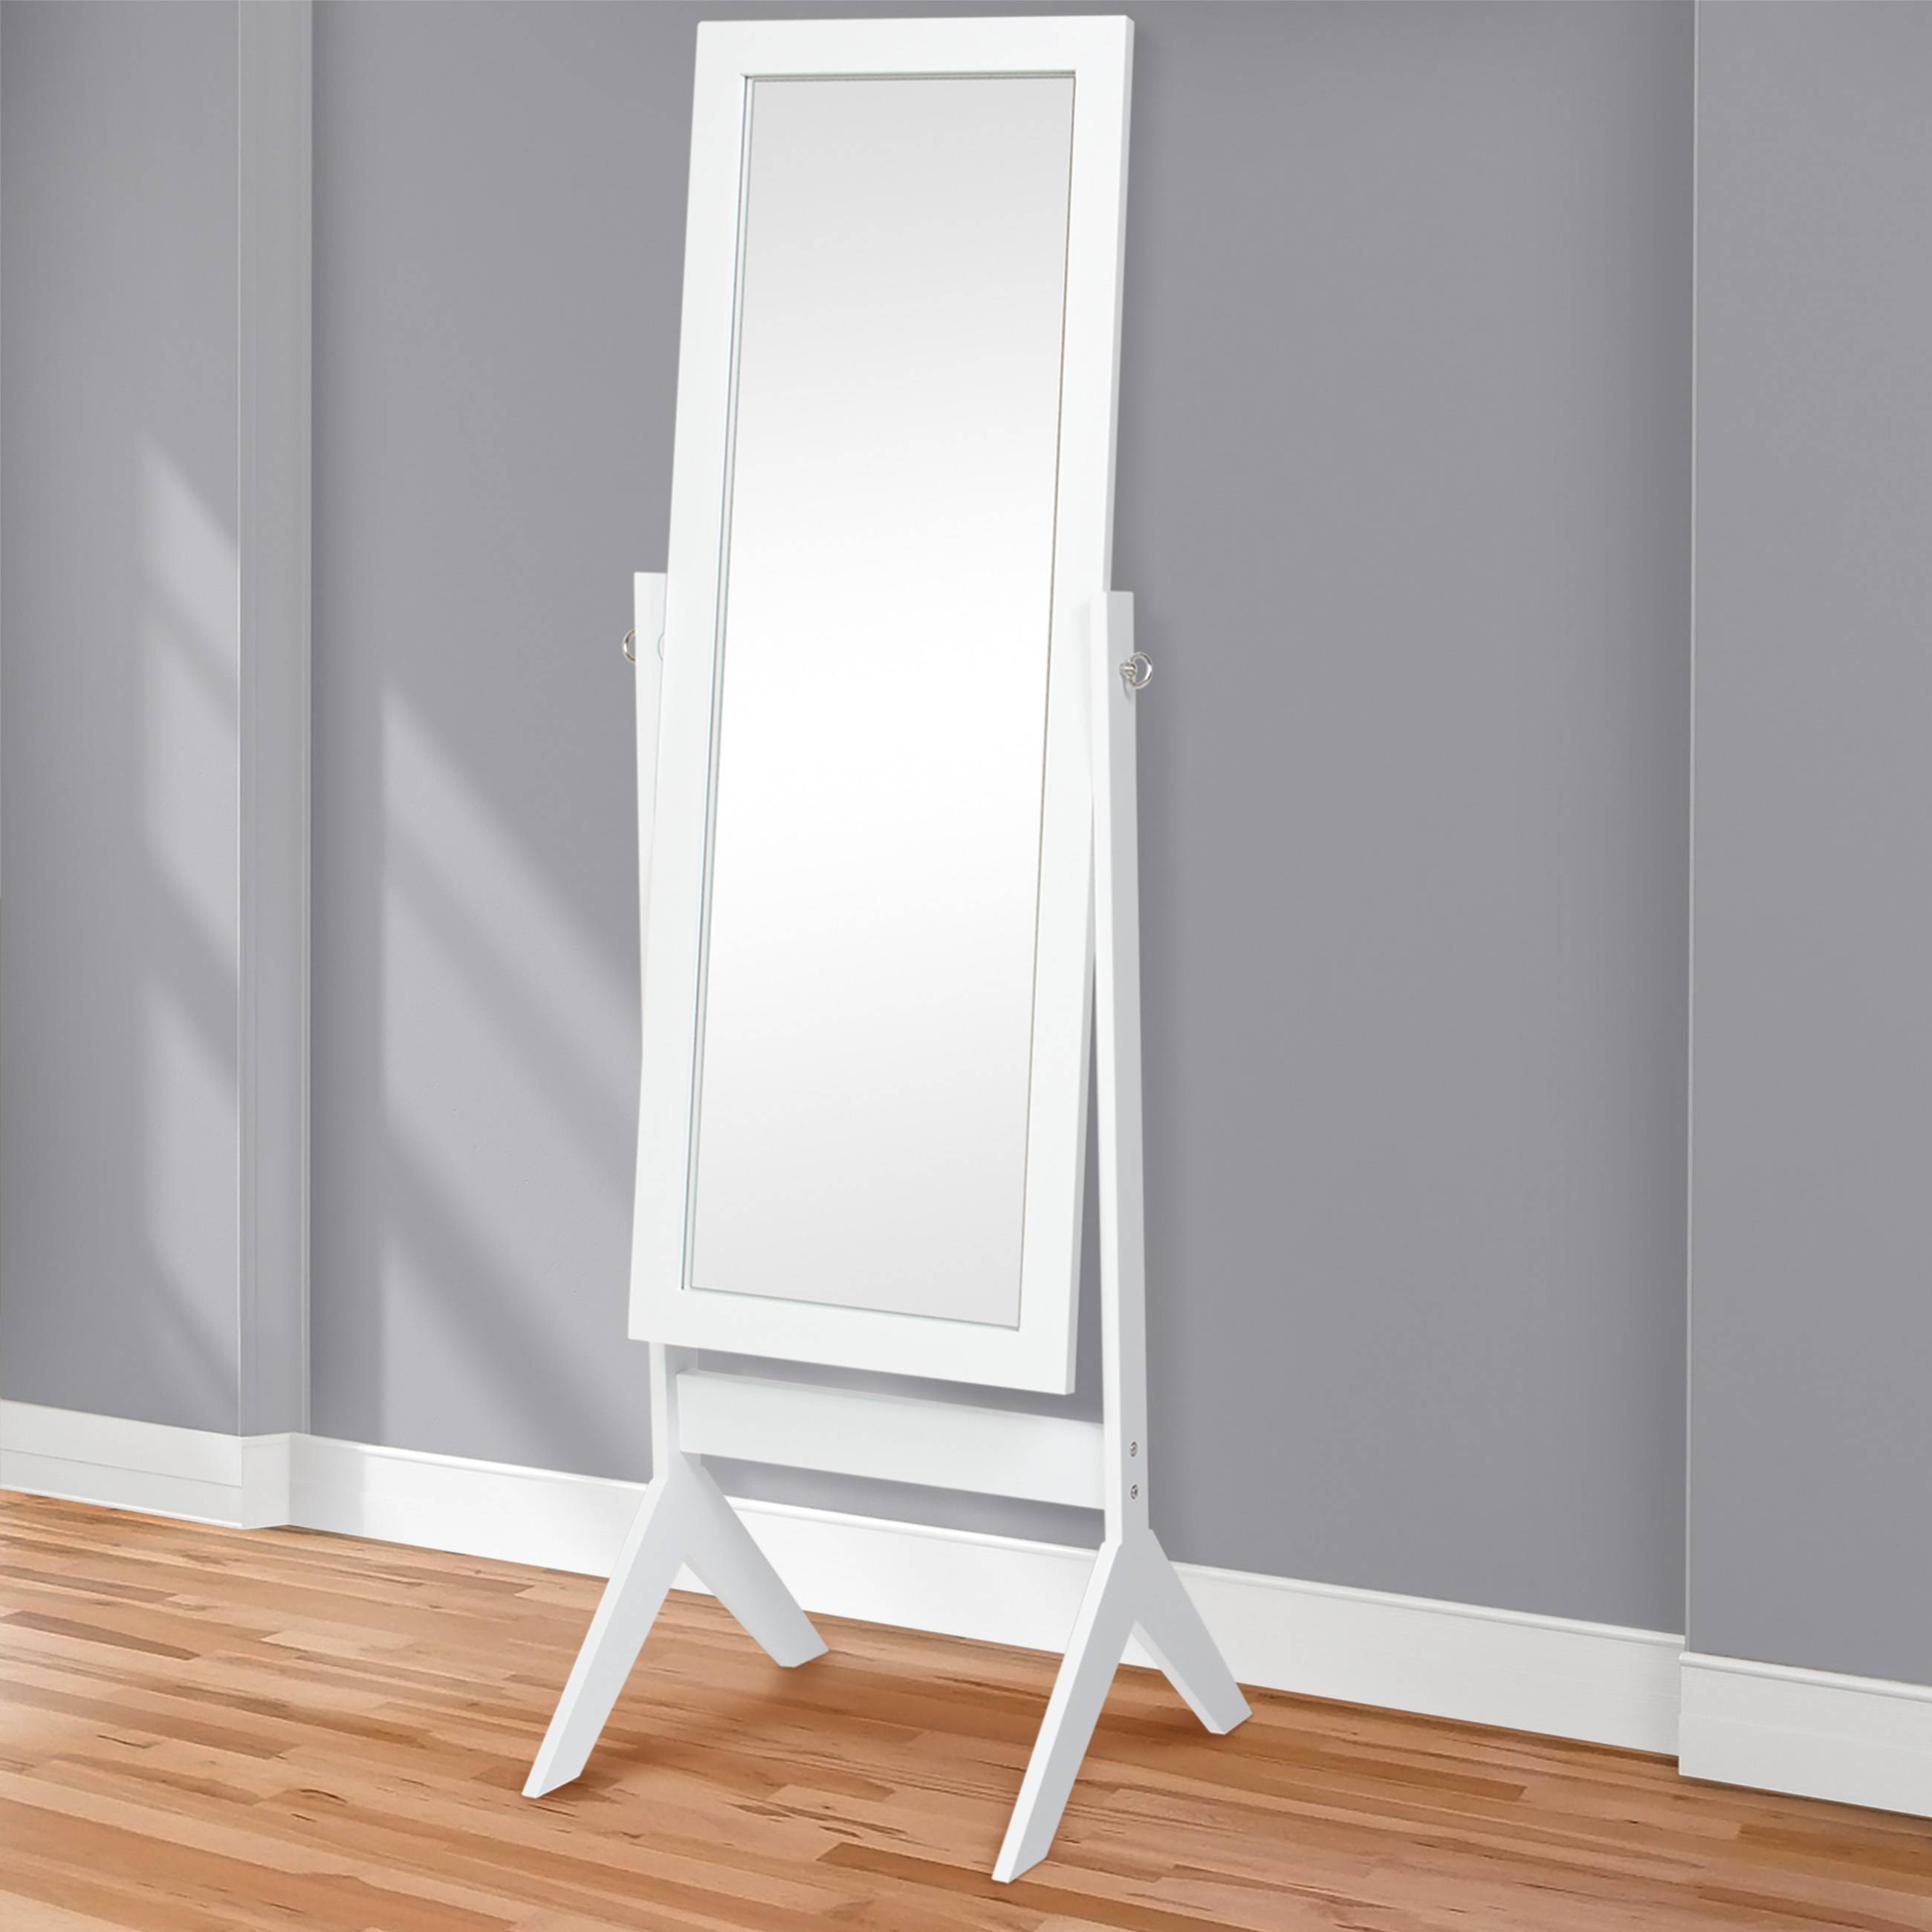 Free Standing Long Mirrors Bedroom ~ Piazzesi throughout Free Standing Long Mirrors (Image 9 of 15)